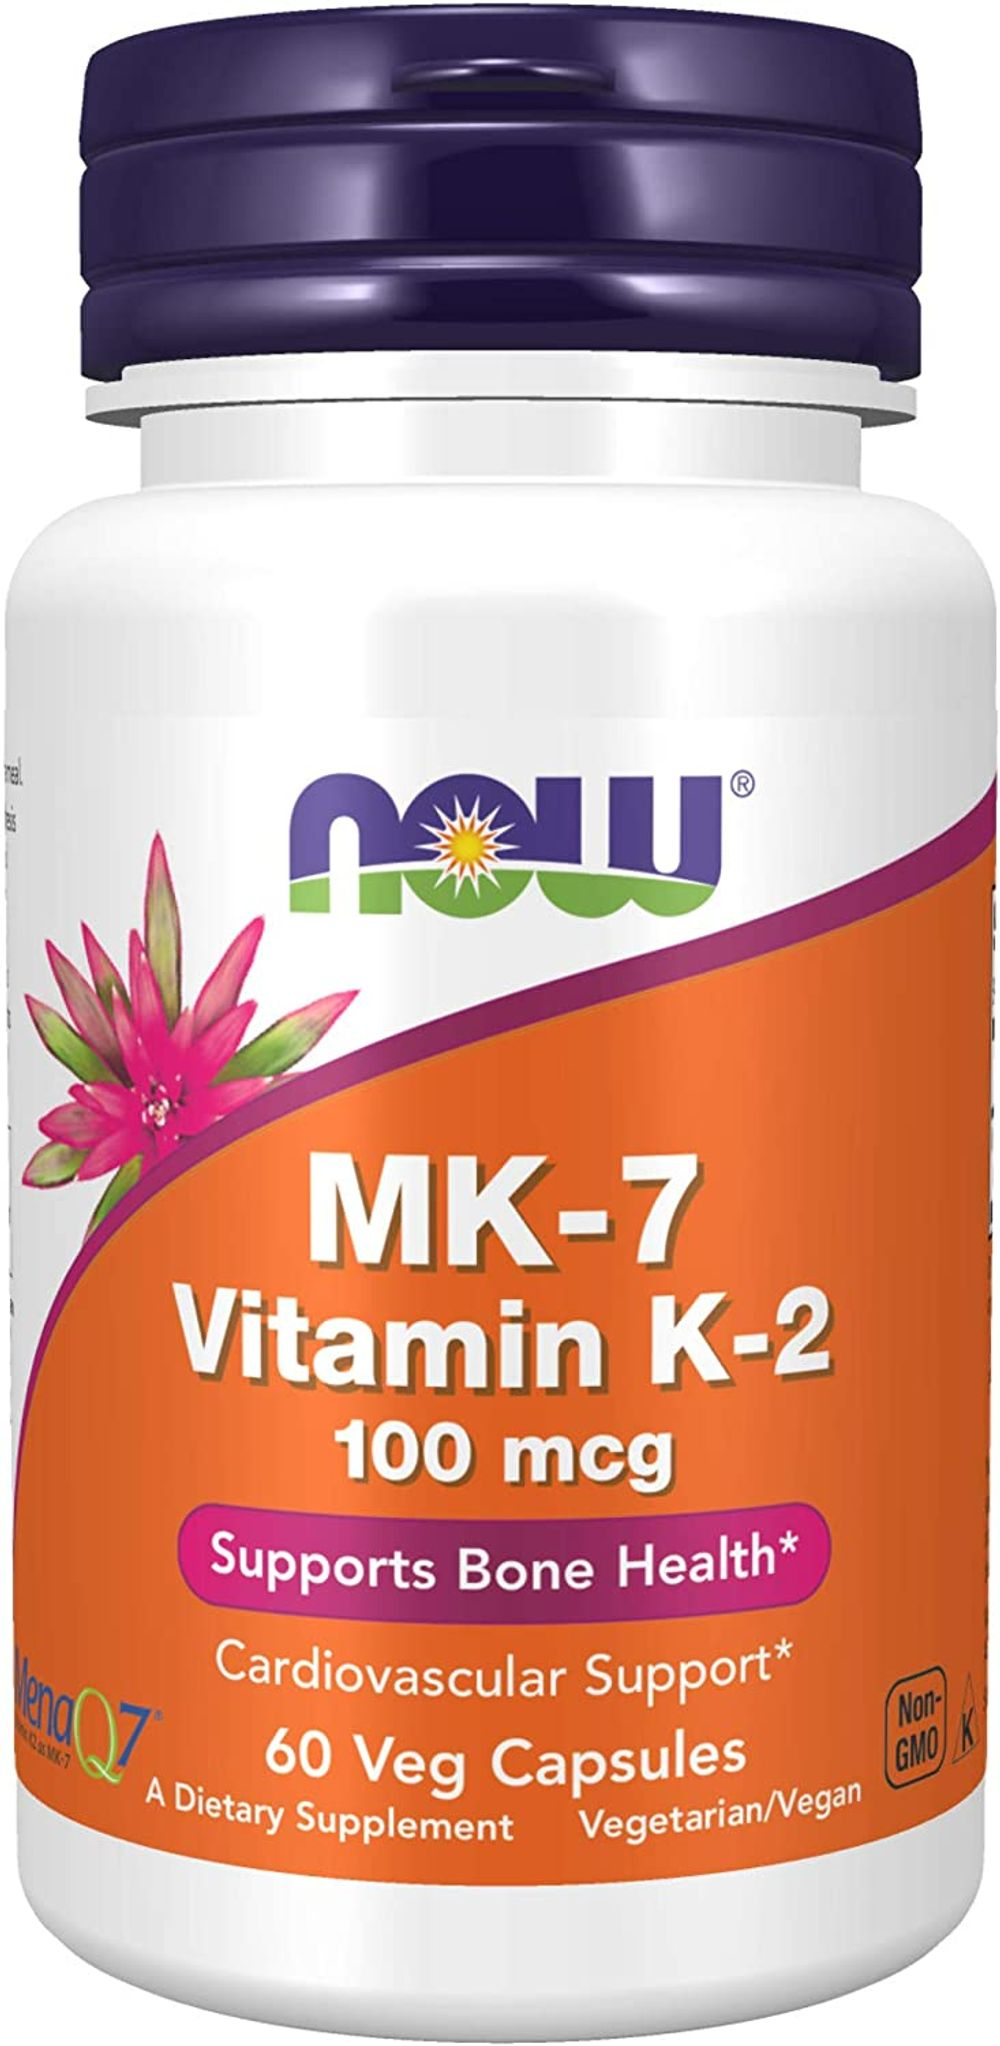 NOW Foods NOW Supplements, MK-7 Vitamin K-2 100 mcg, Cardiovascular Support*, Supports Bone Health*, 60 Veg Capsules